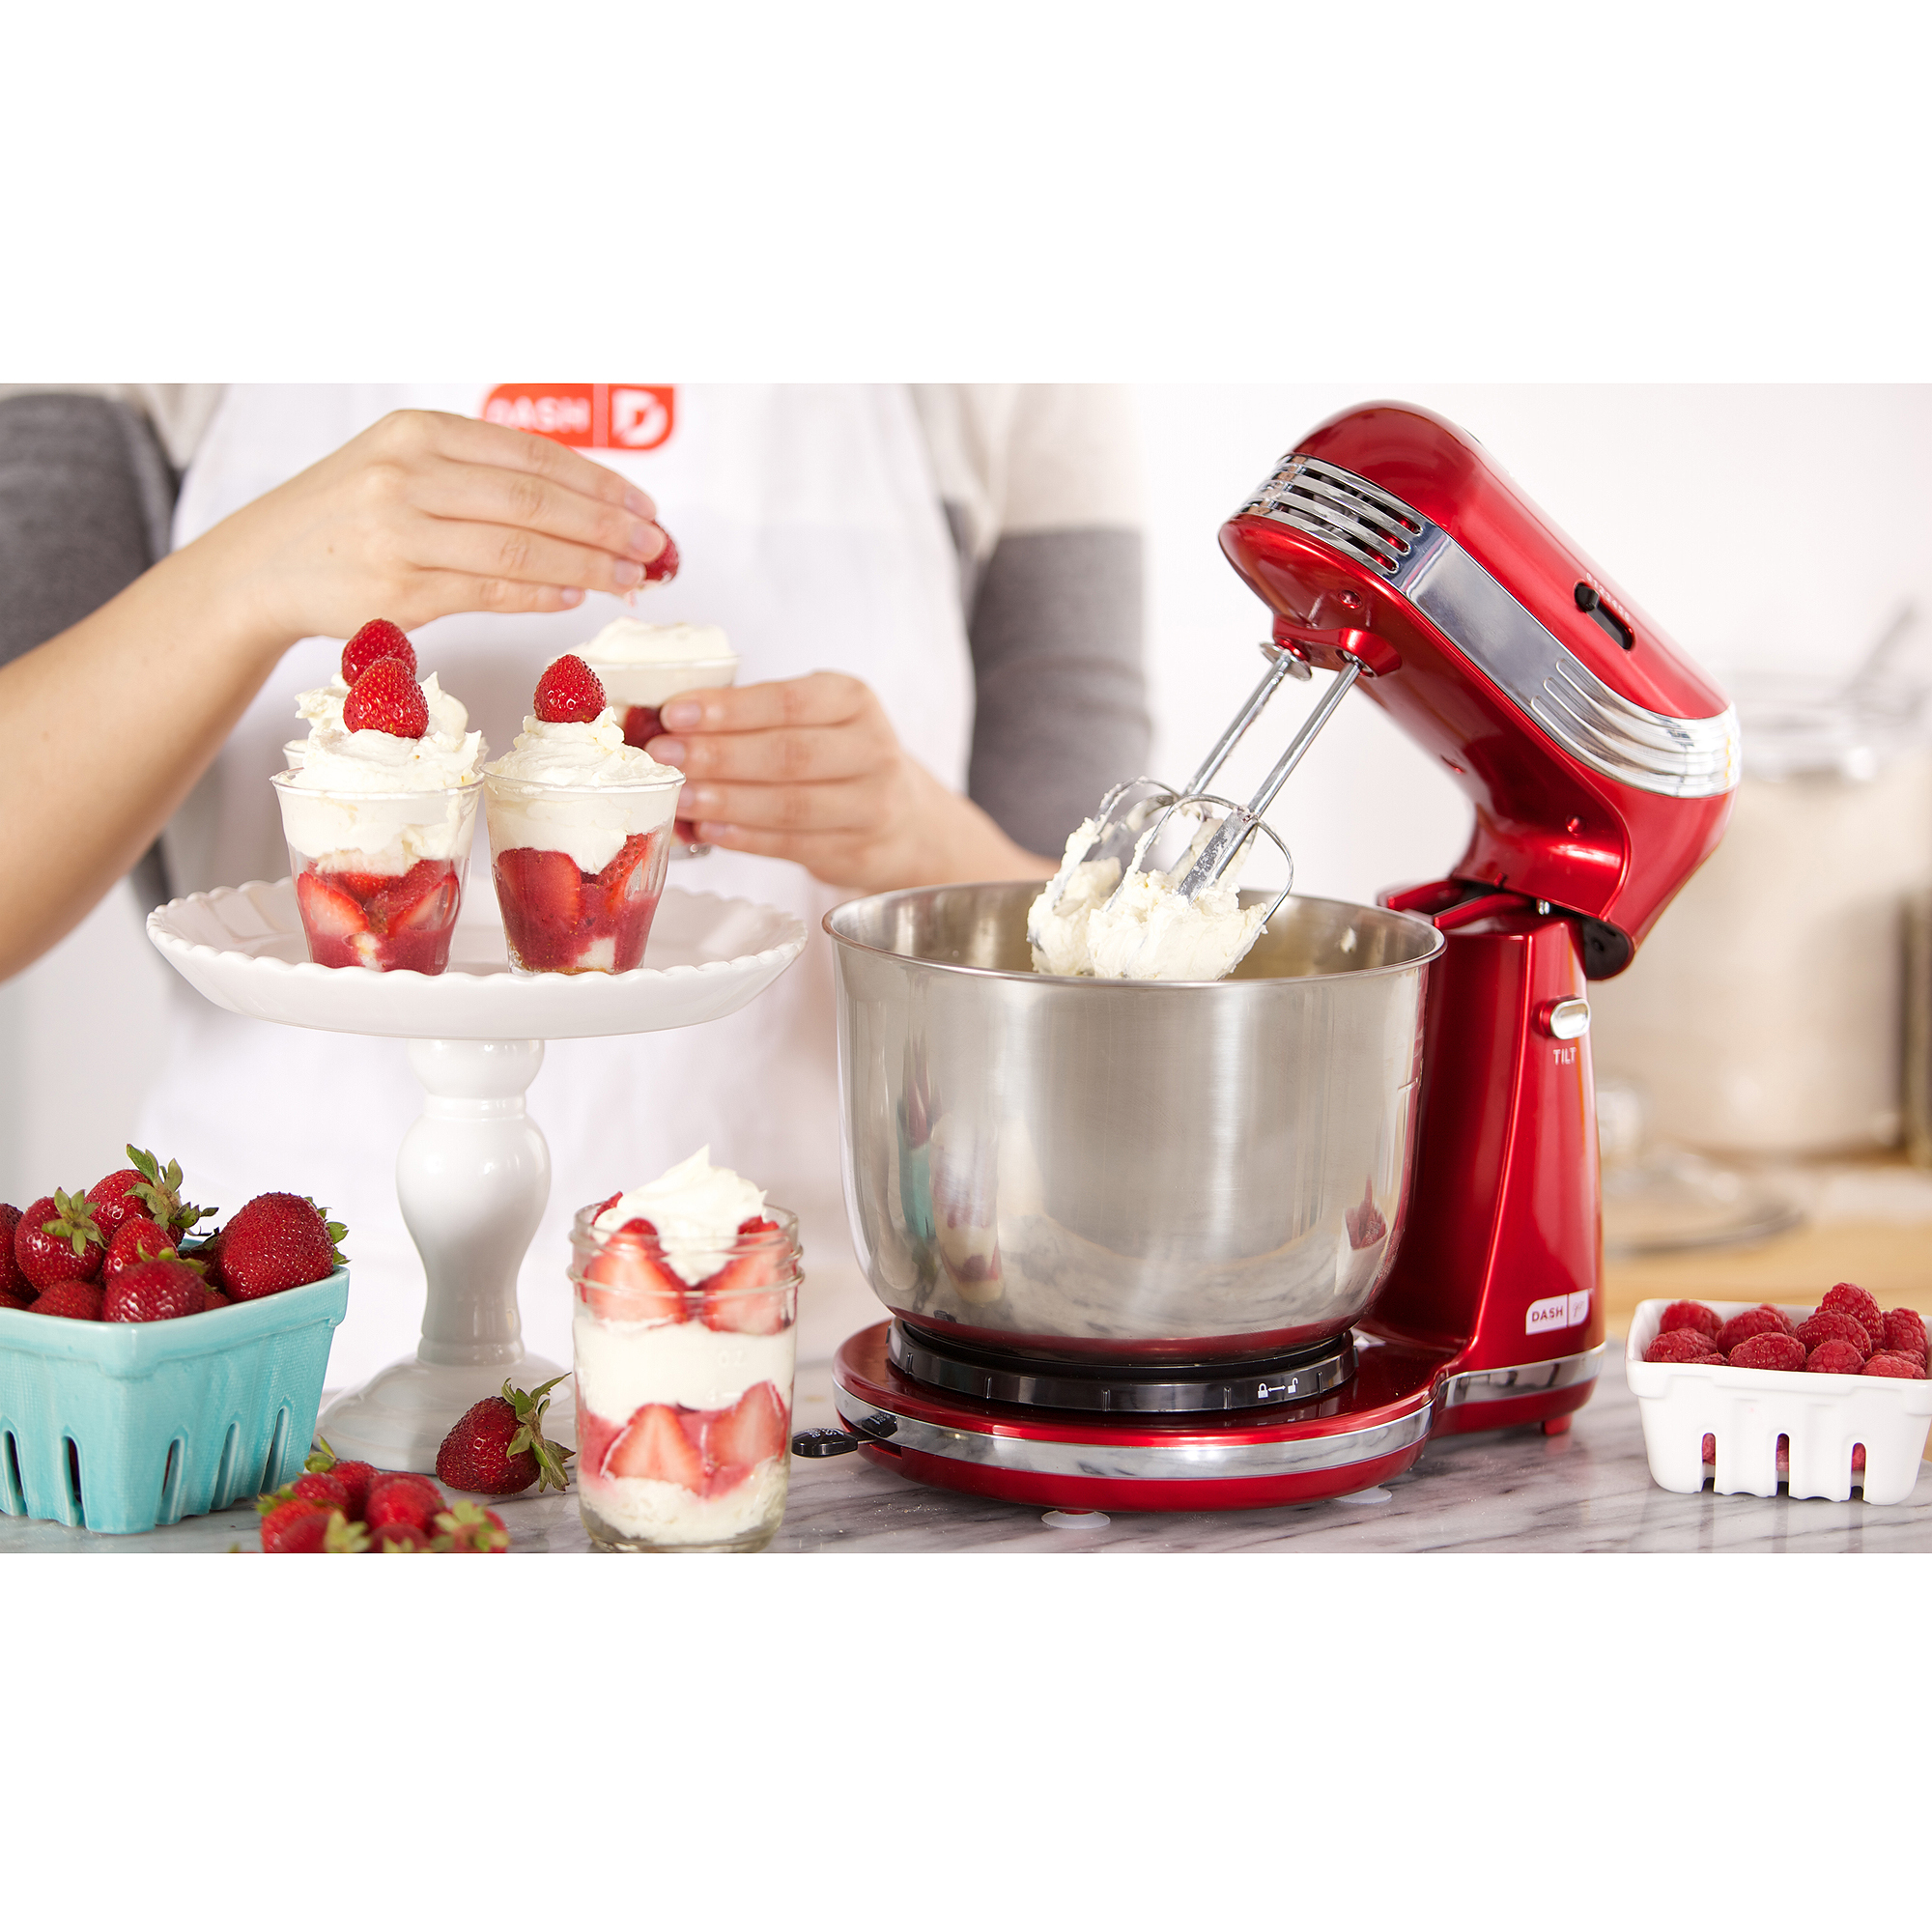 Kitchenaid Clic Series 4 5 Quart Tilt Head Stand Mixer White K45sswh